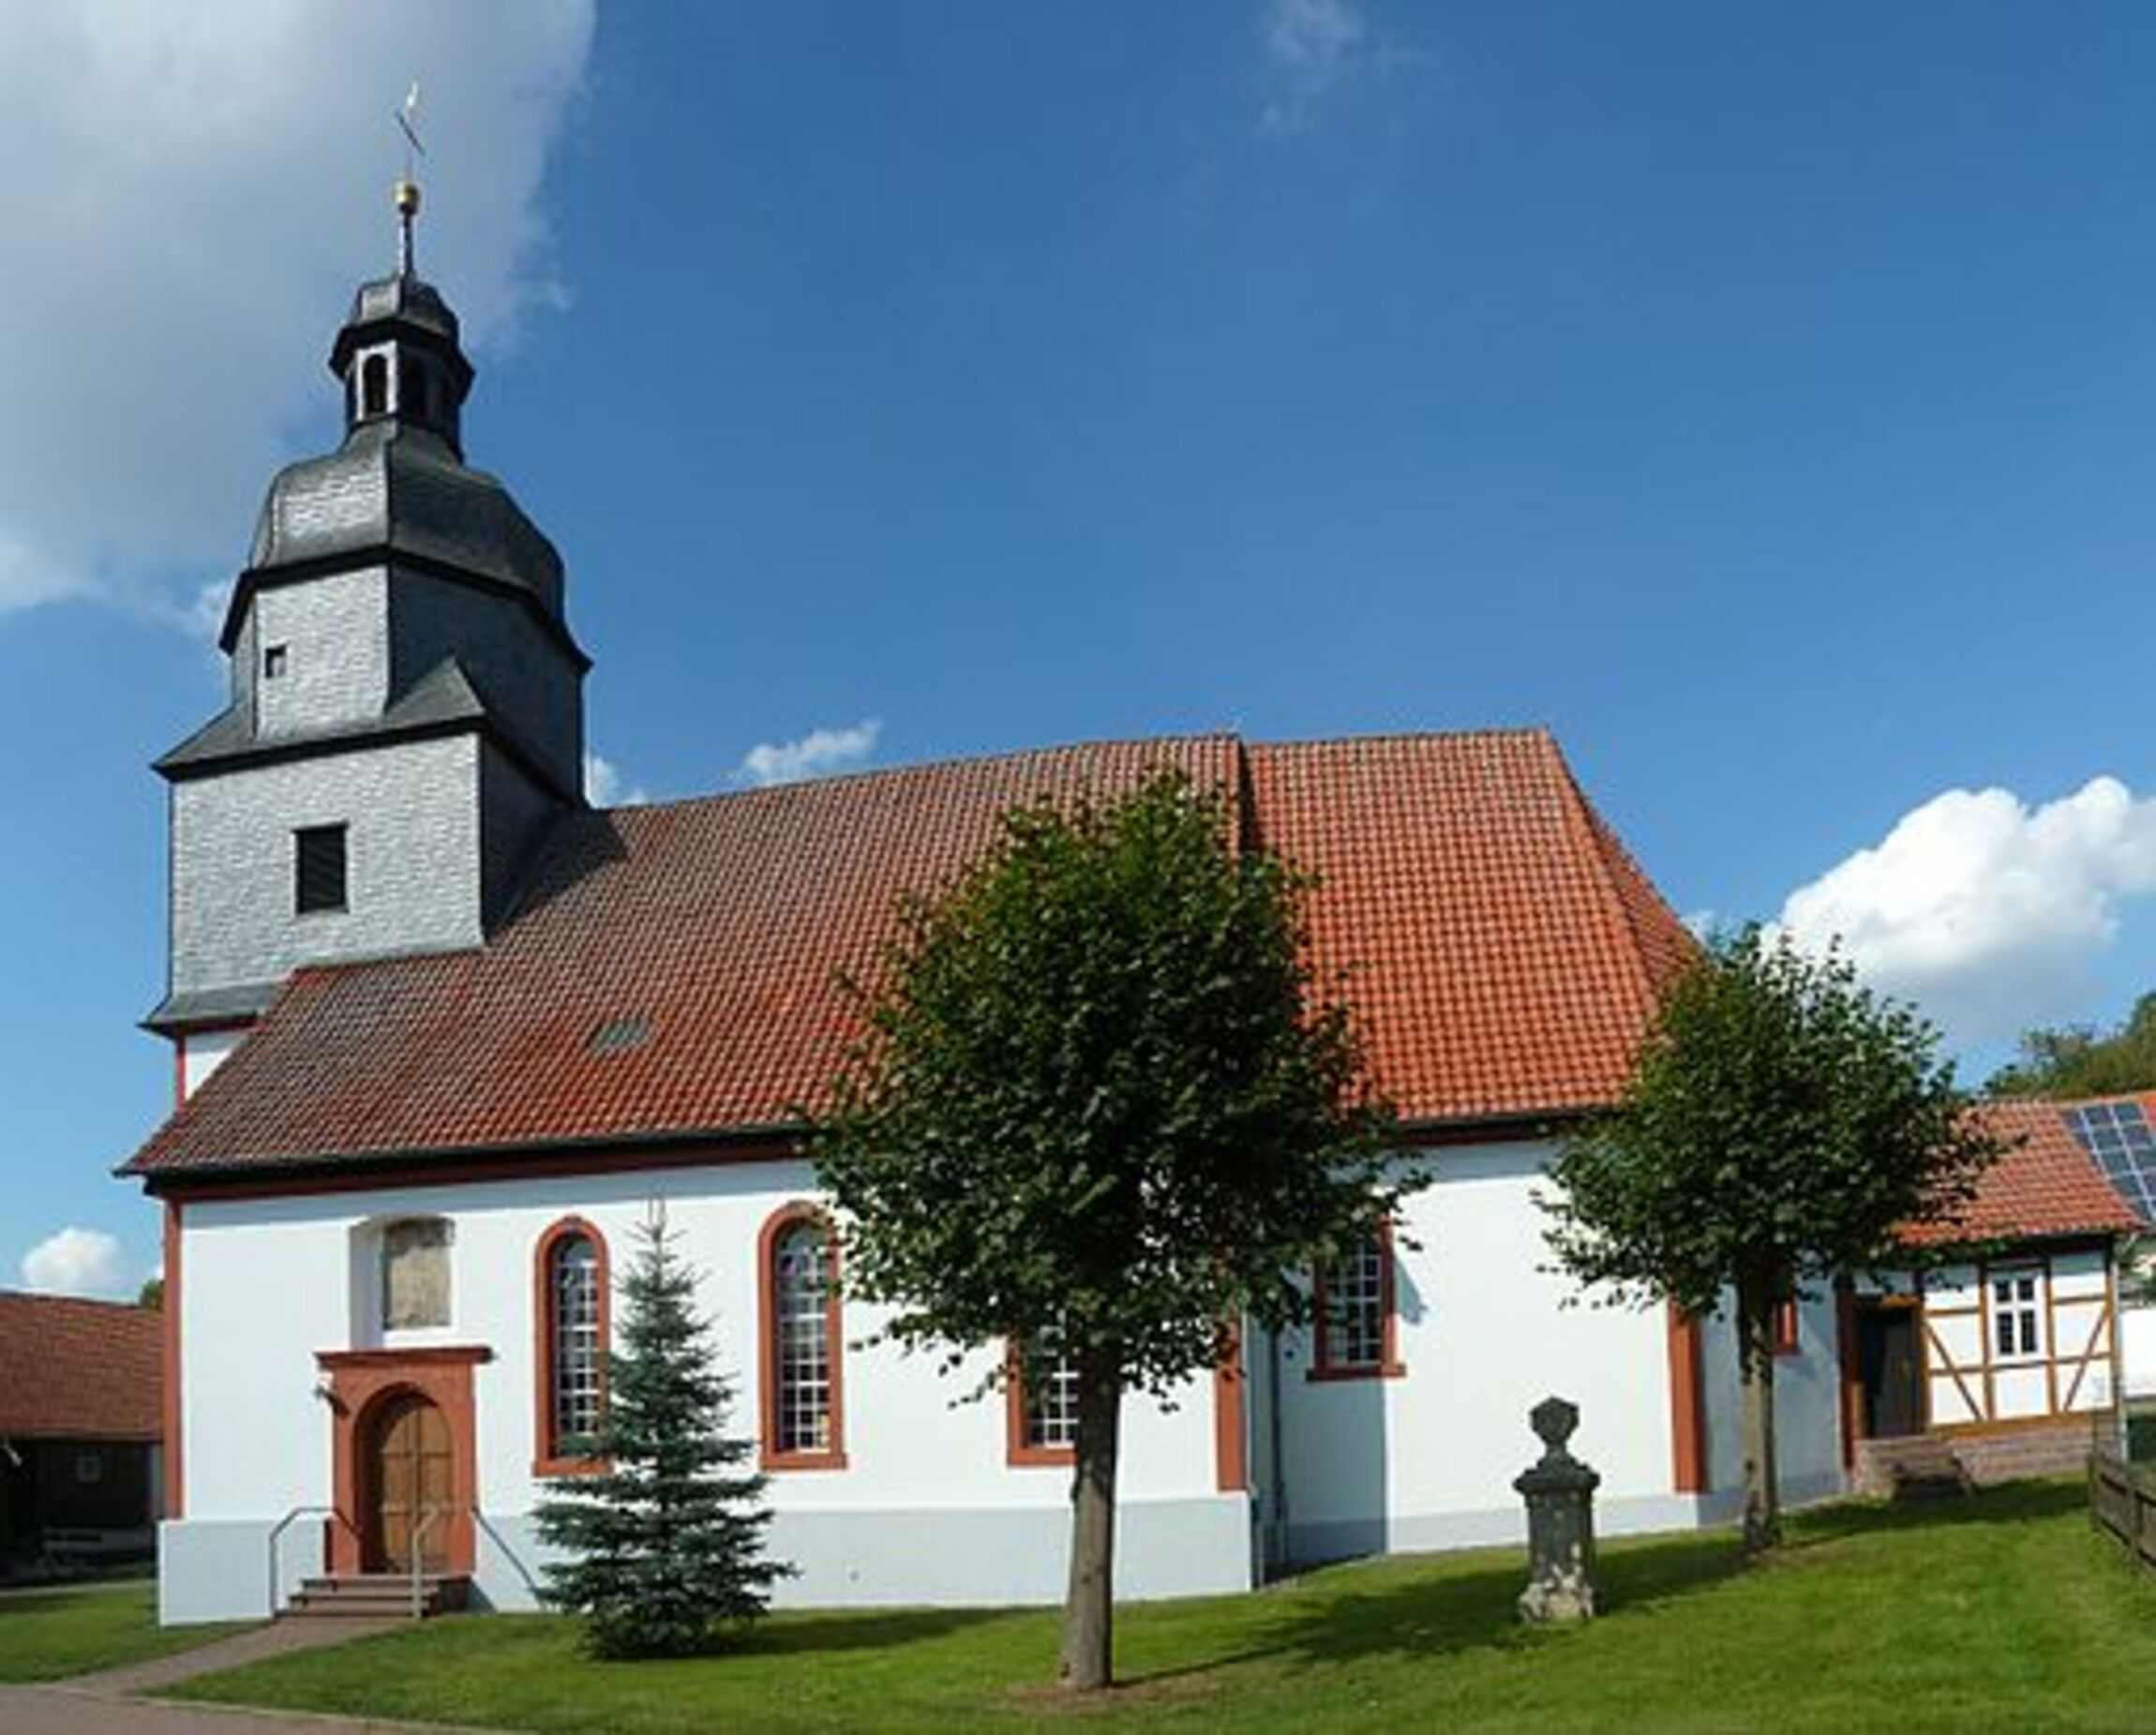 St. Marien Wollershausen